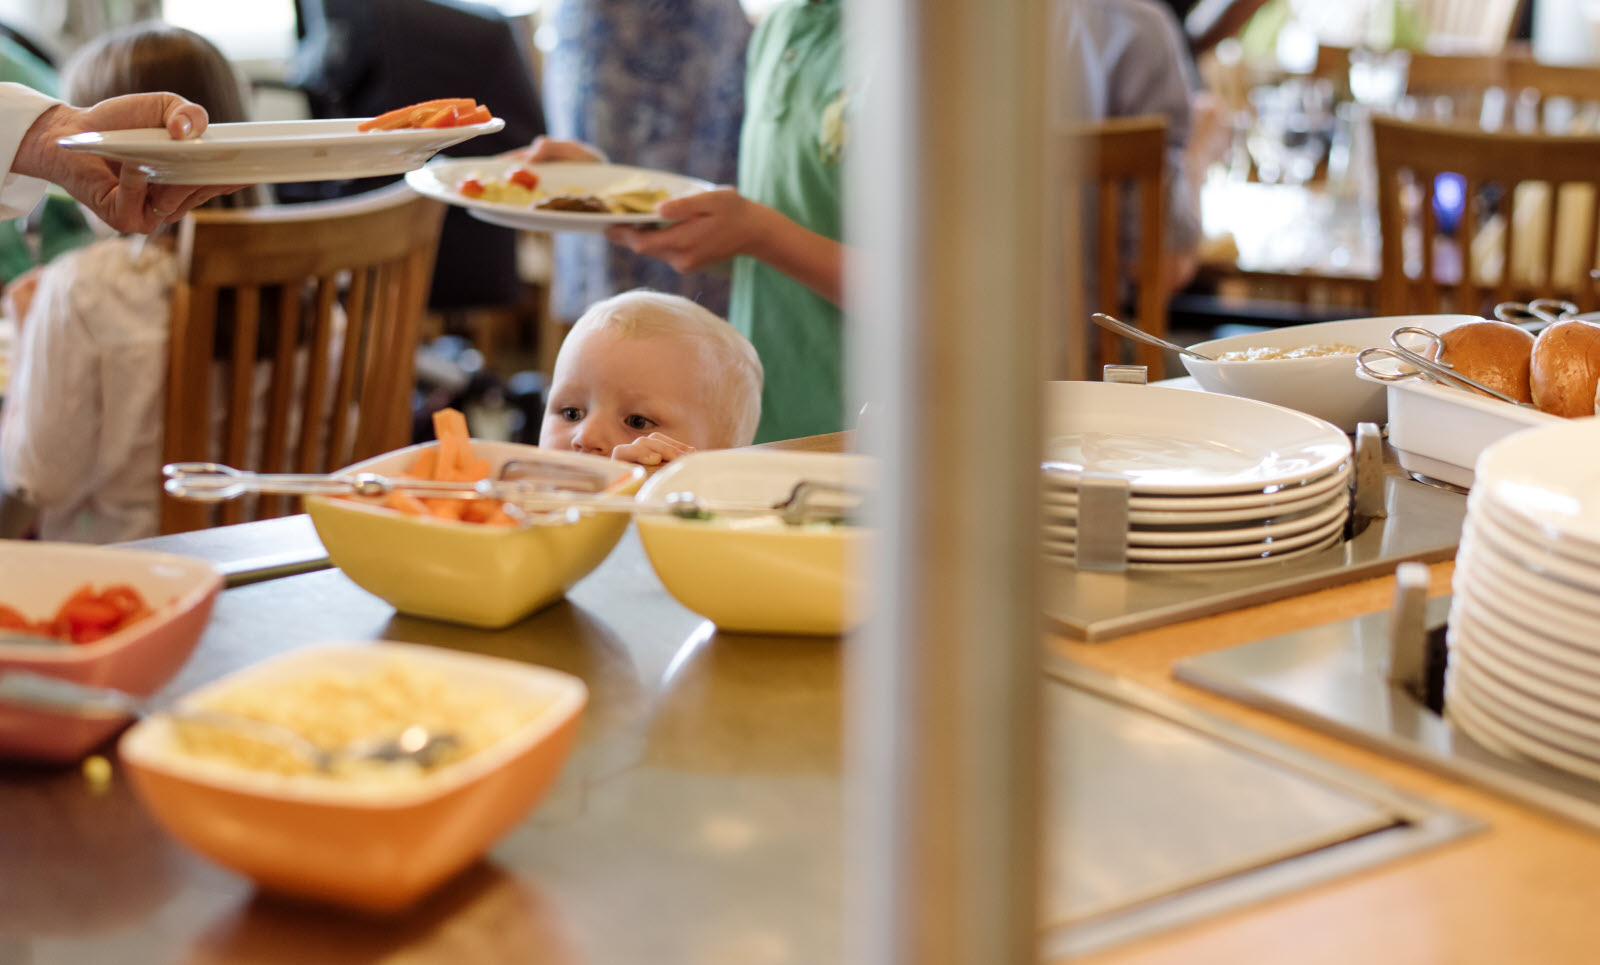 Scandic-people-family-kids-menu-f_b-buffet-peekabo.jpg